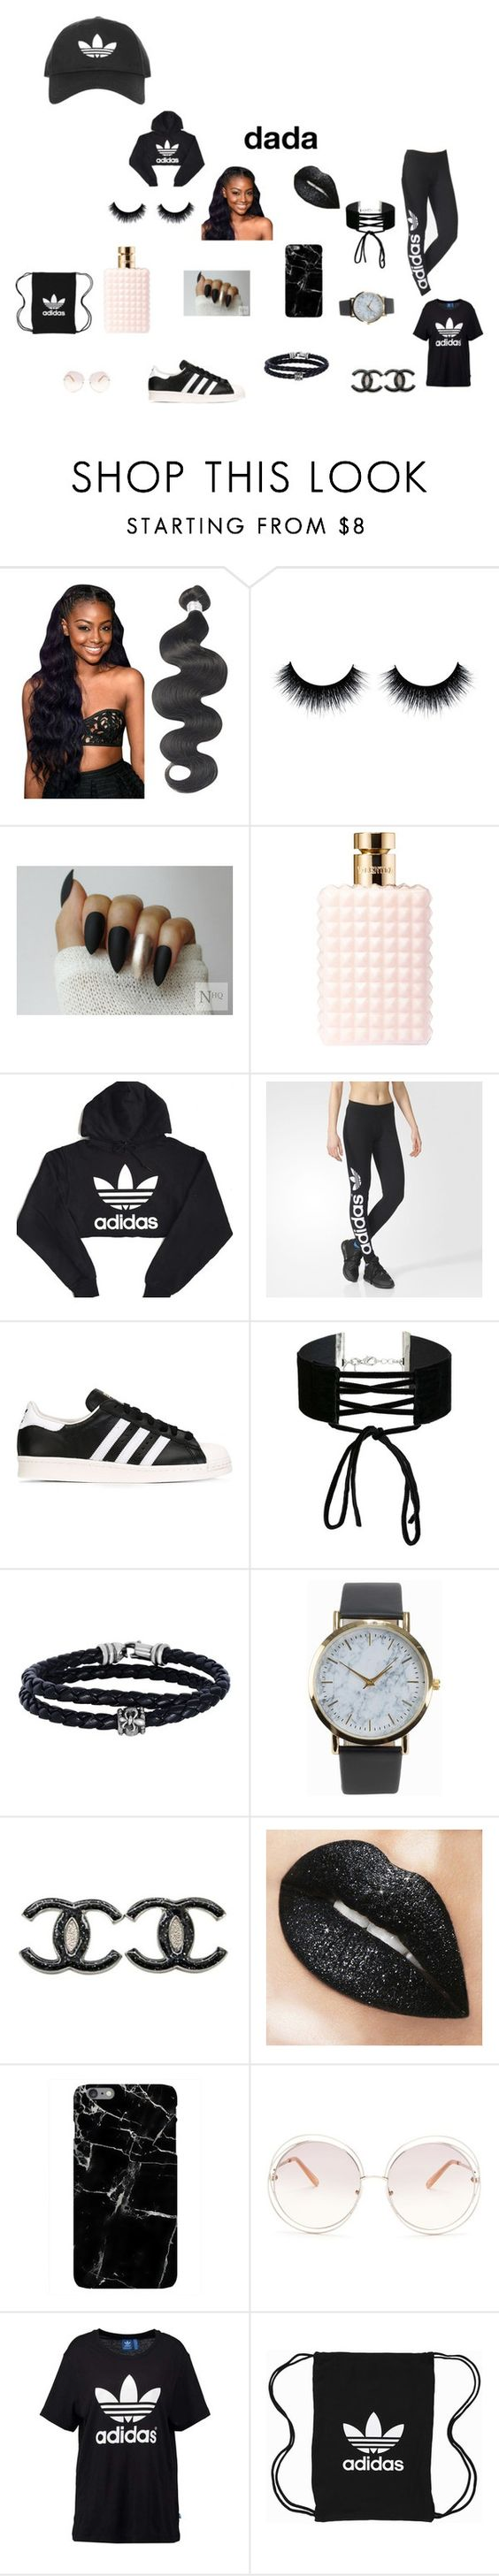 """""""adidas outfit dada aye"""" by teshonalee ❤ liked on Polyvore featuring Valentino, adidas, adidas Originals, Miss Selfridge, Phillip Gavriel, NLY Accessories, Chanel, Chloé and Topshop"""